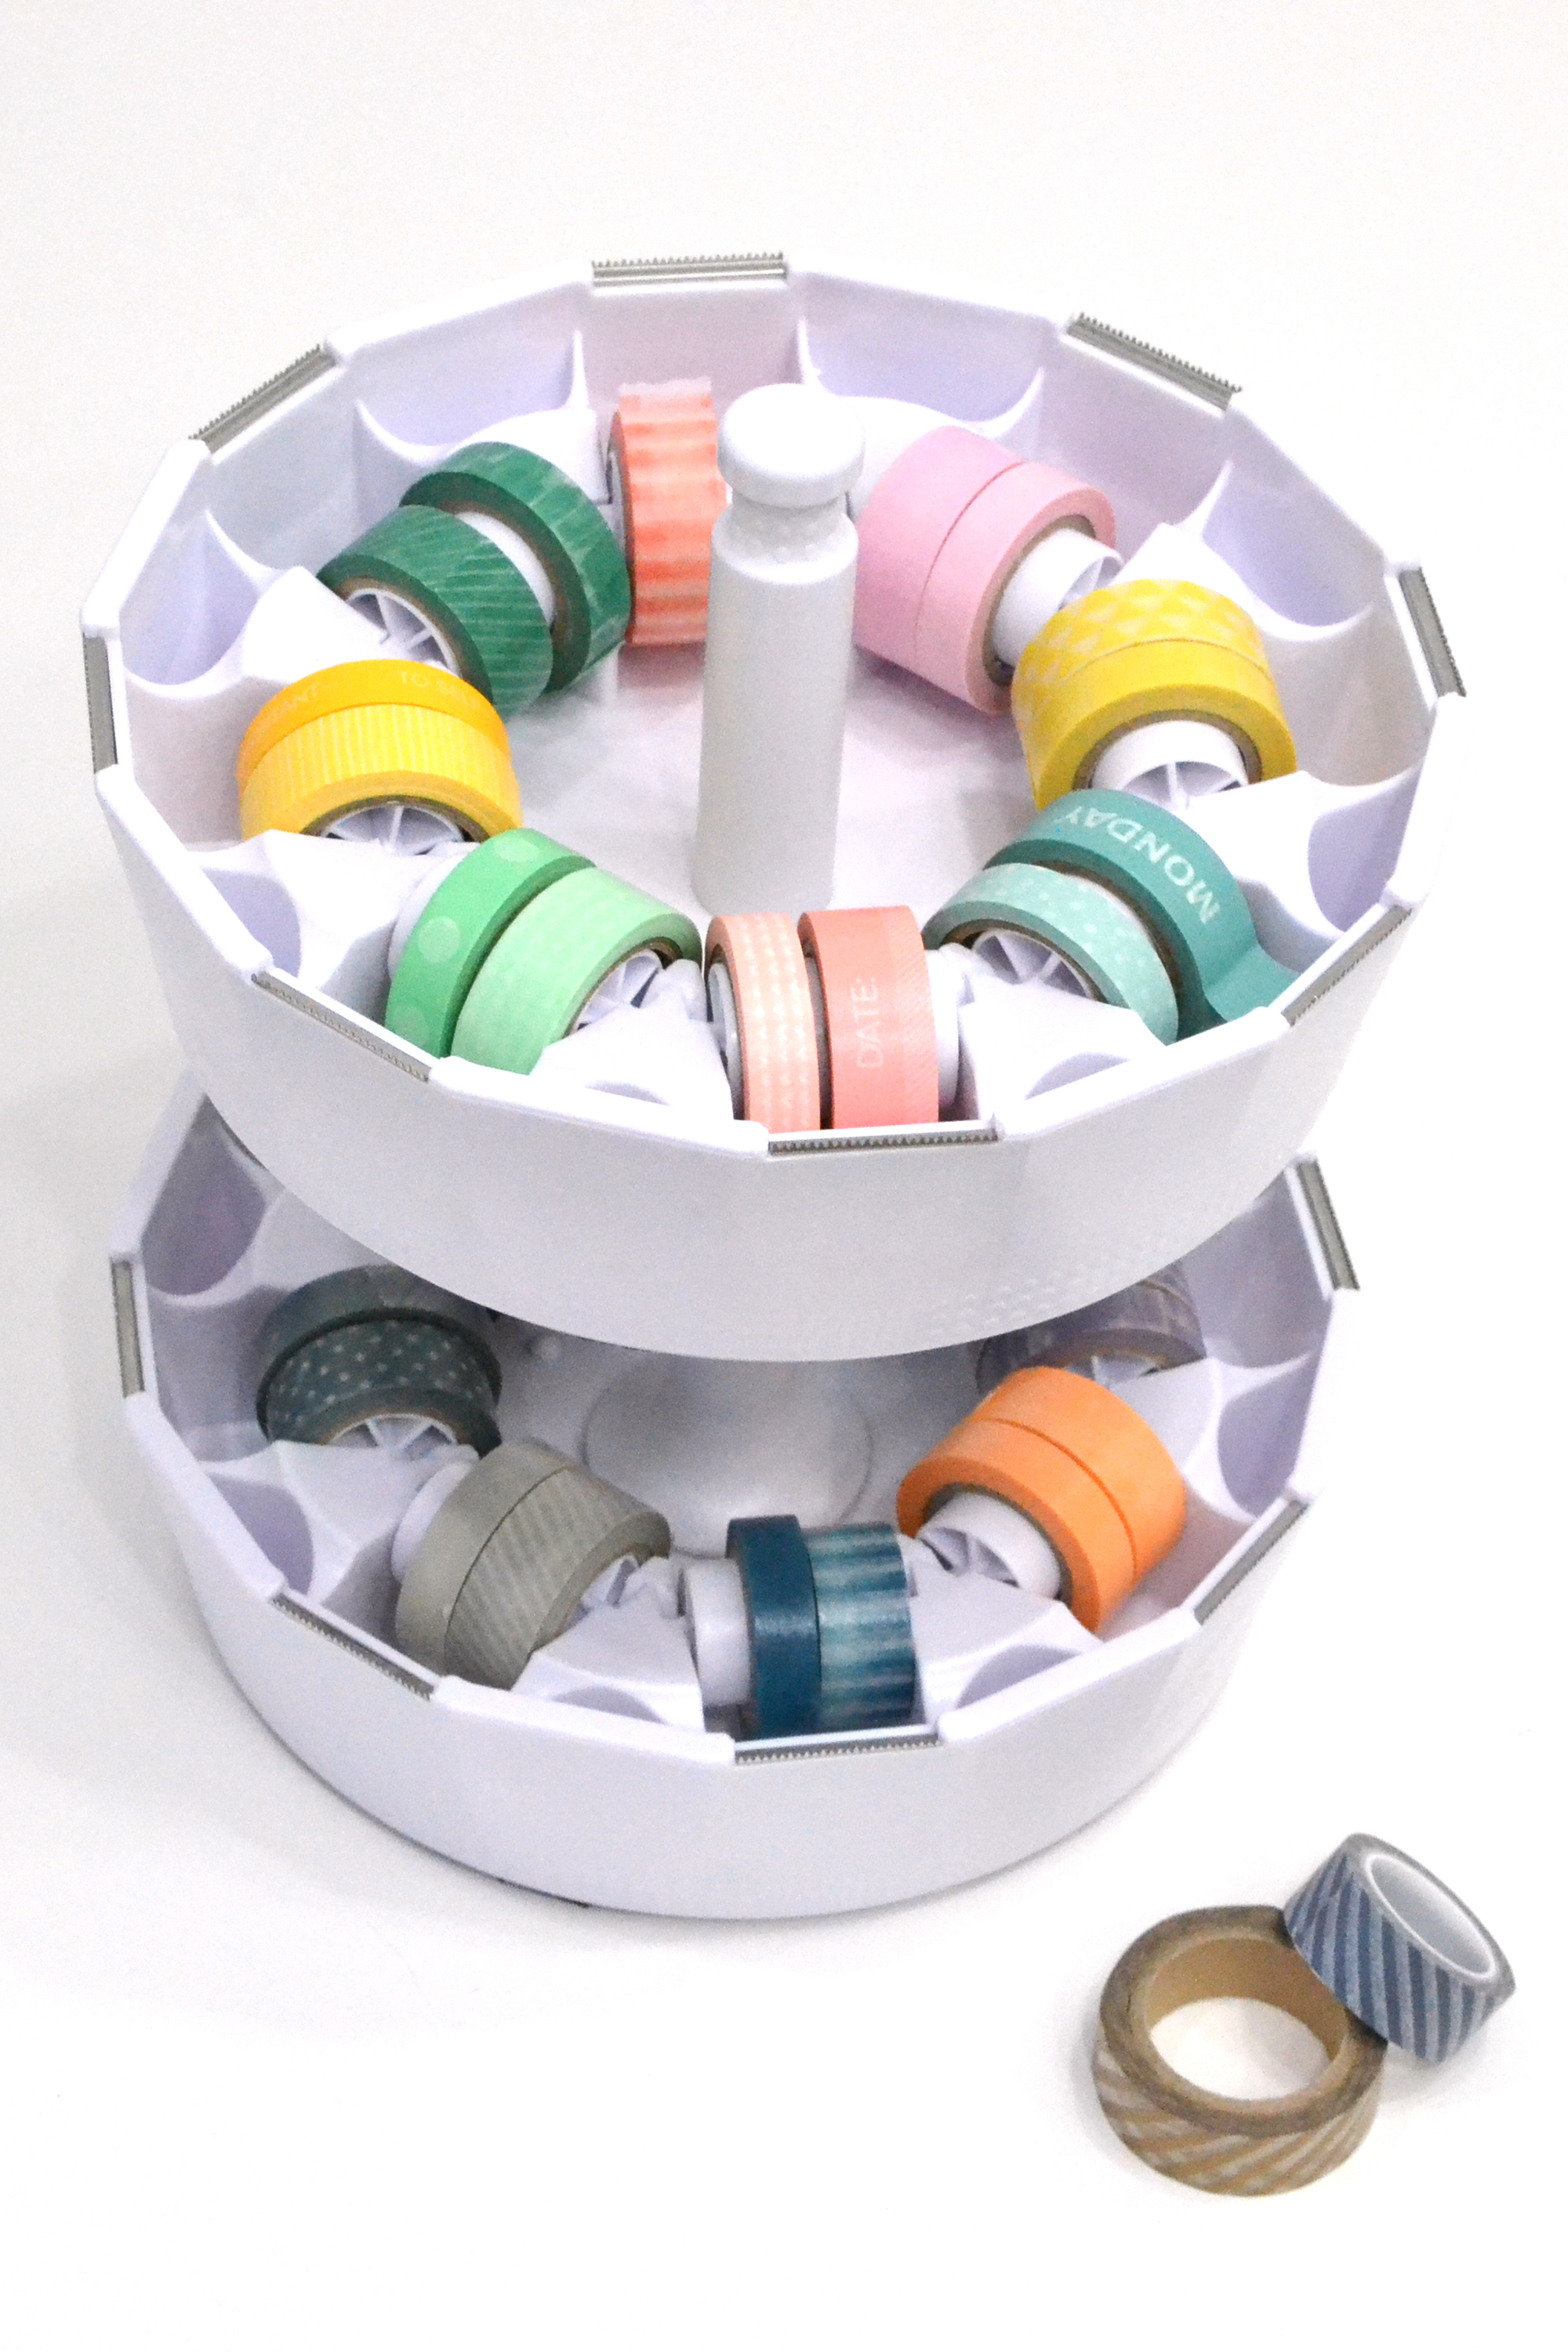 We R Memory Keepers Washi Tape Dispenser featured in Aly Dosdall's craft room